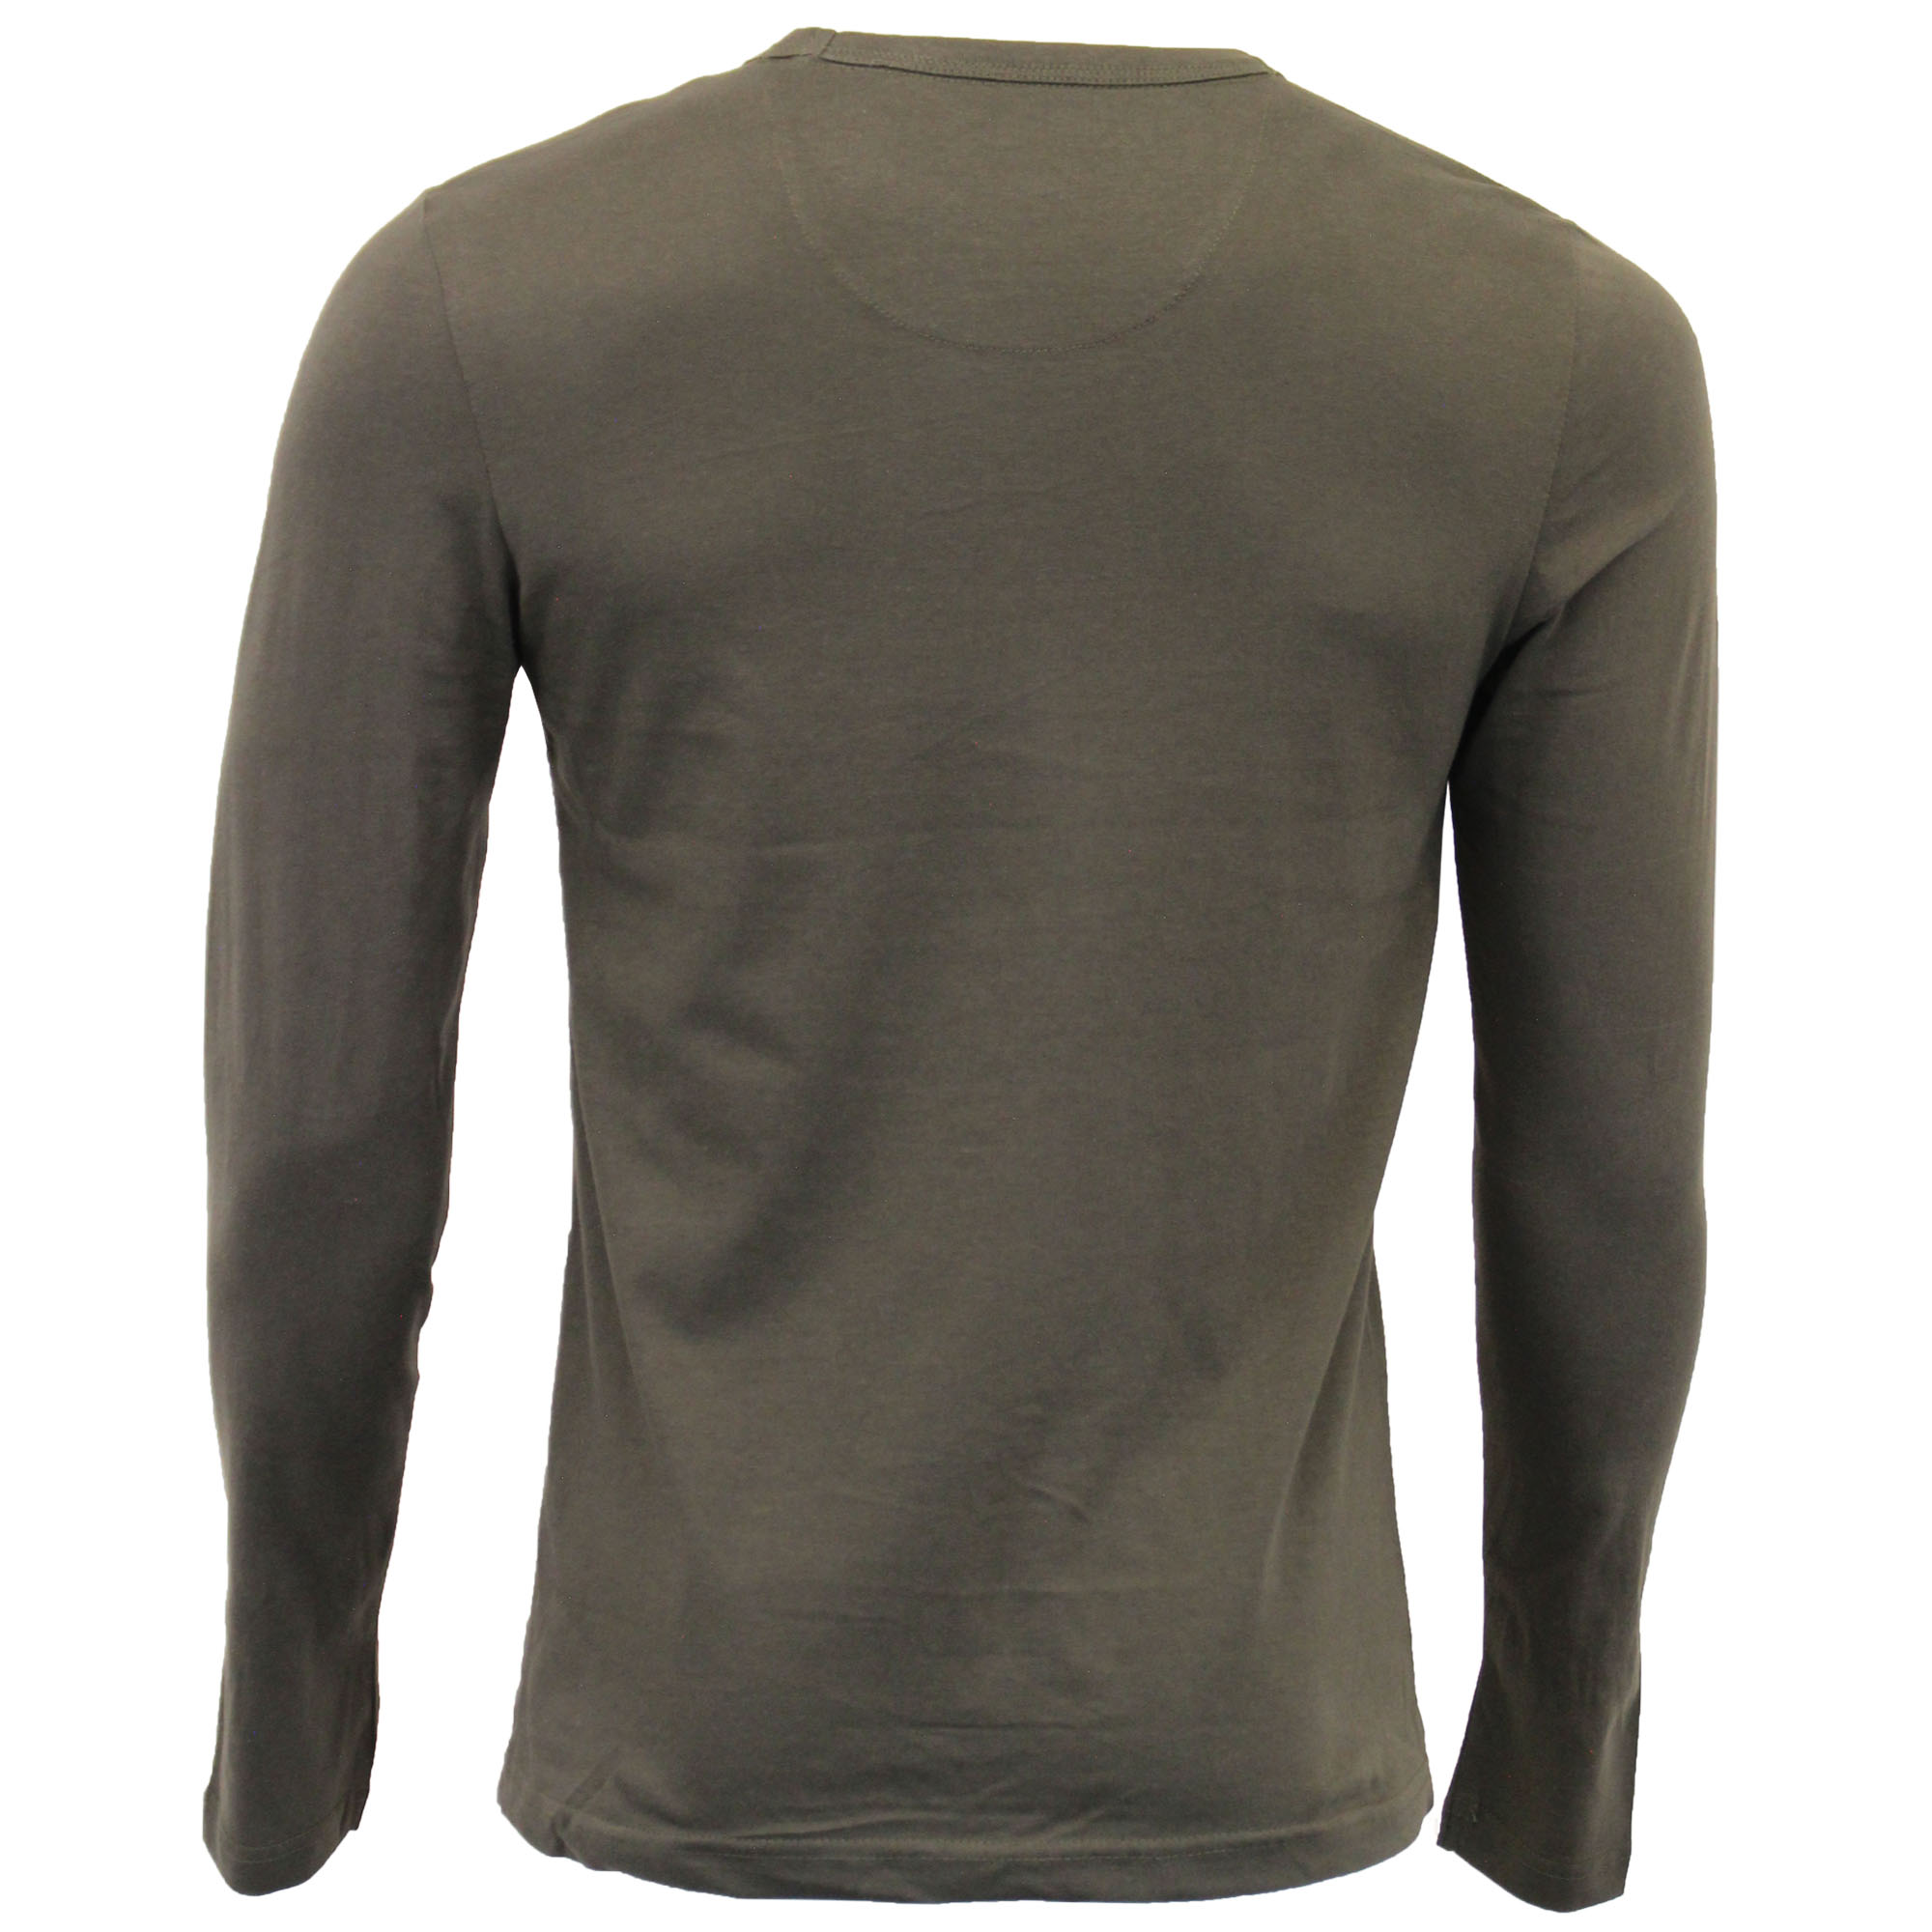 Mens-Jersey-Top-Brave-Soul-Long-Sleeved-T-Shirt-69PRAGUE-Crew-Neck-King-Sizes